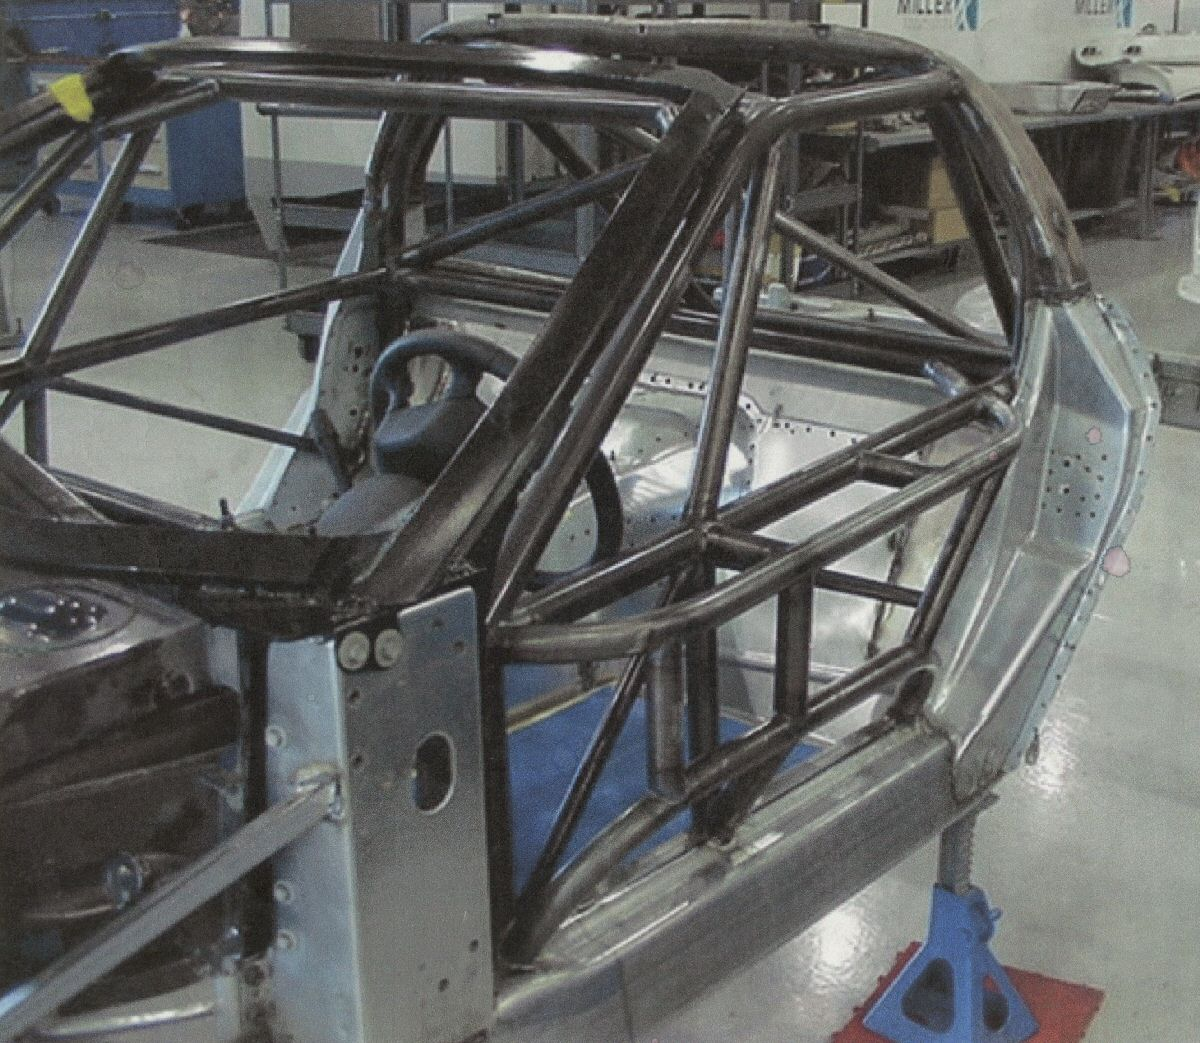 C5R chassis